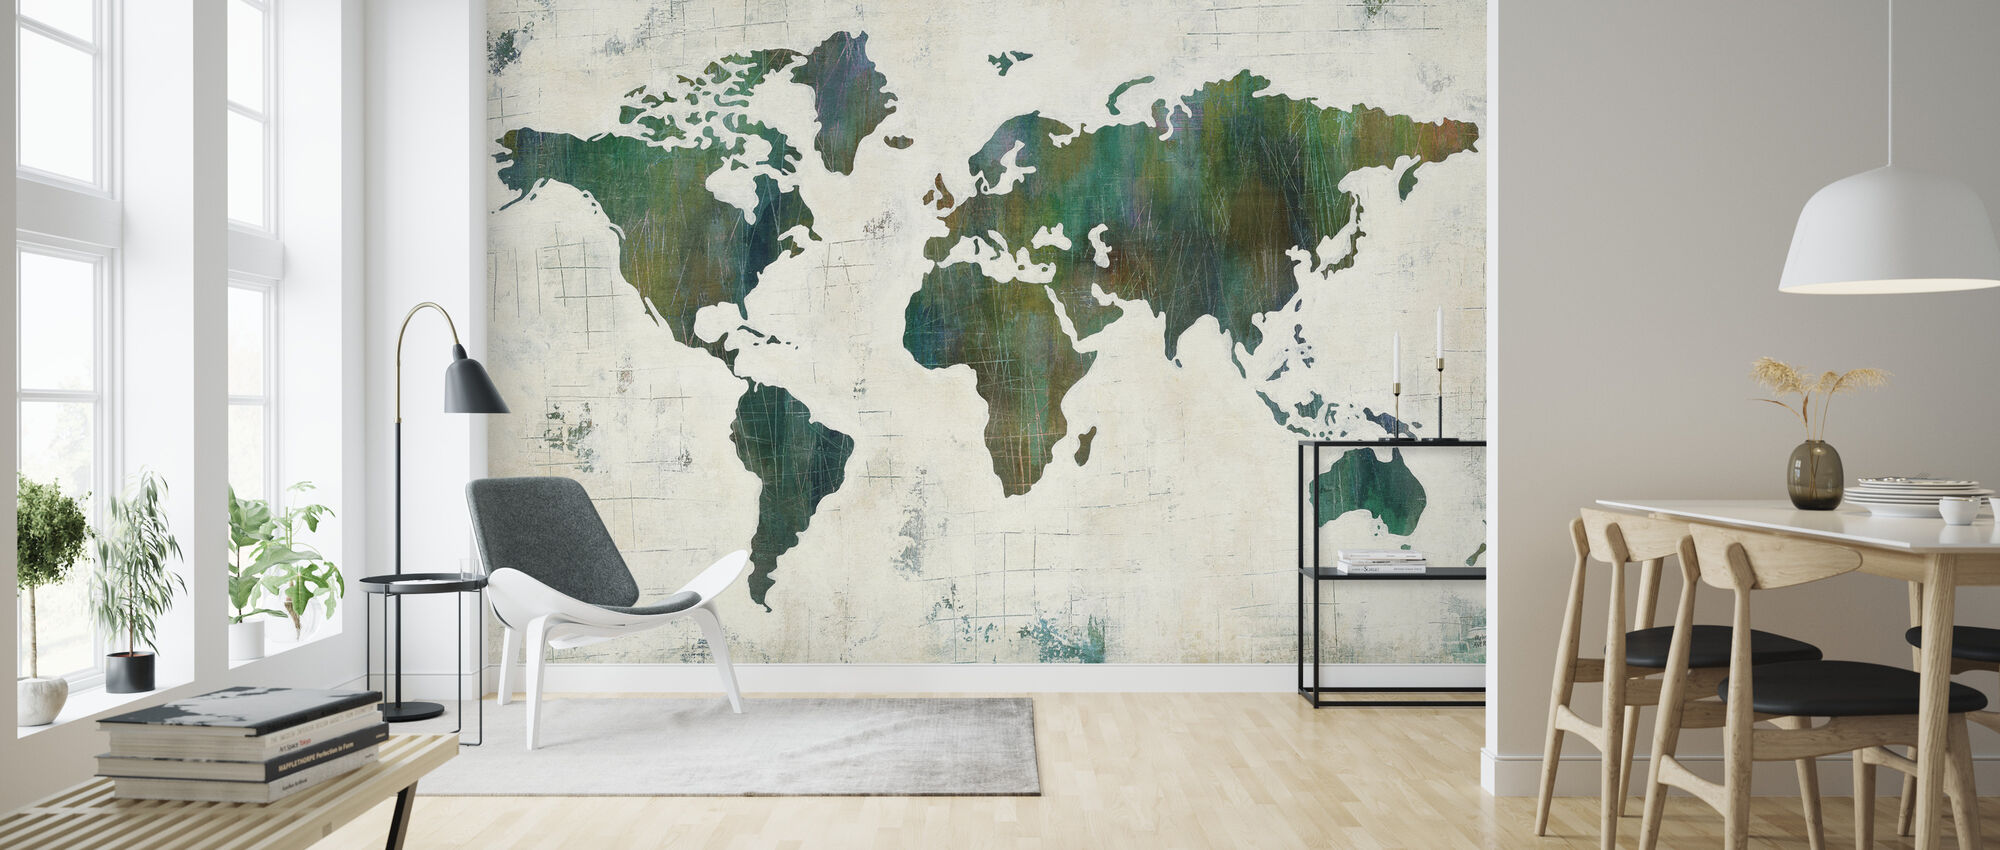 Discover the World - Wallpaper - Living Room